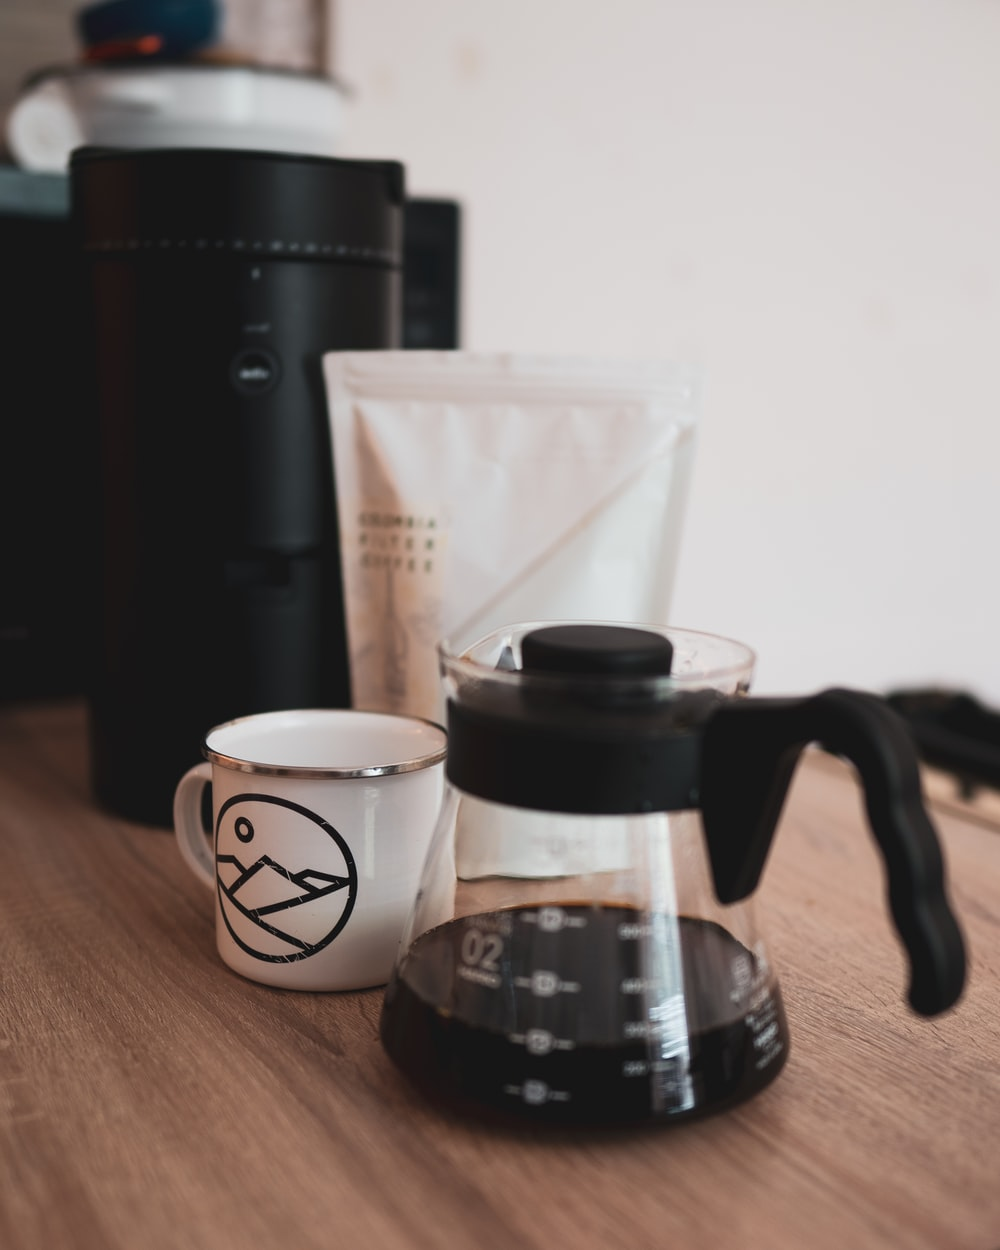 black and white coffee cup on brown wooden table